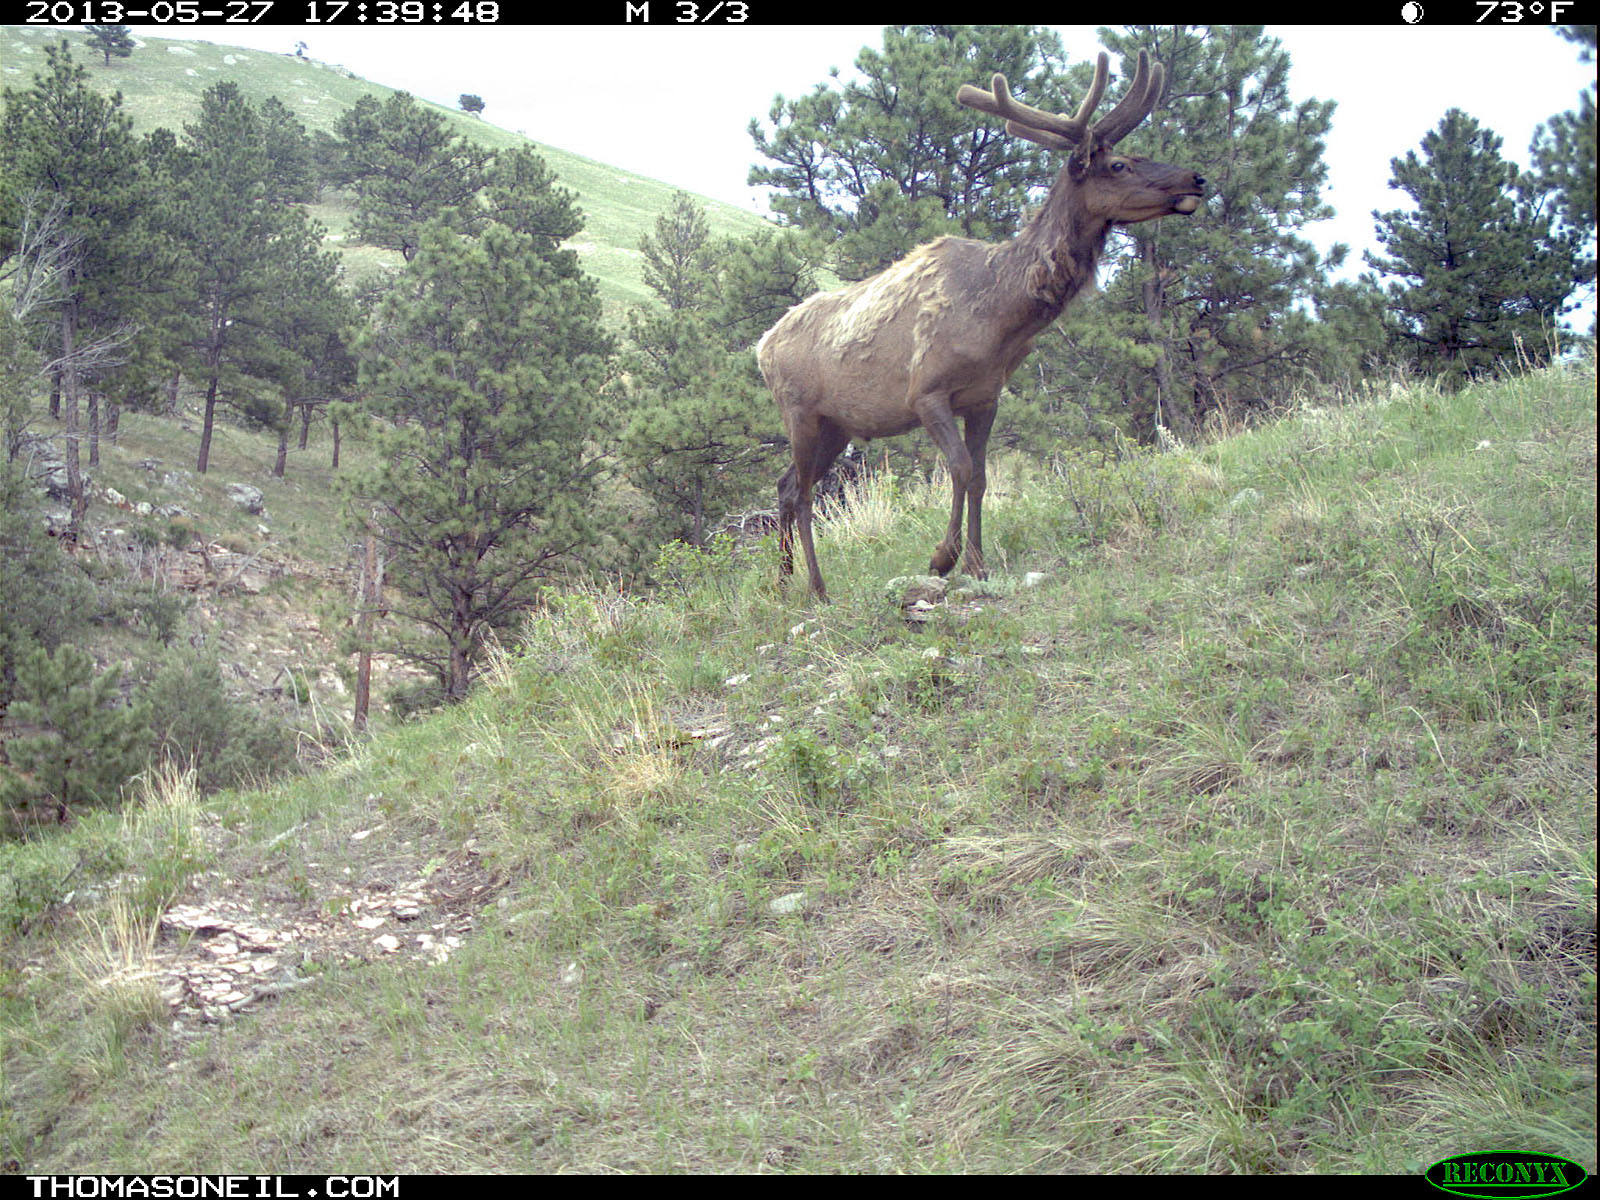 Elk on trail camera, Wind Cave National Park, South Dakota, May 27, 2013.